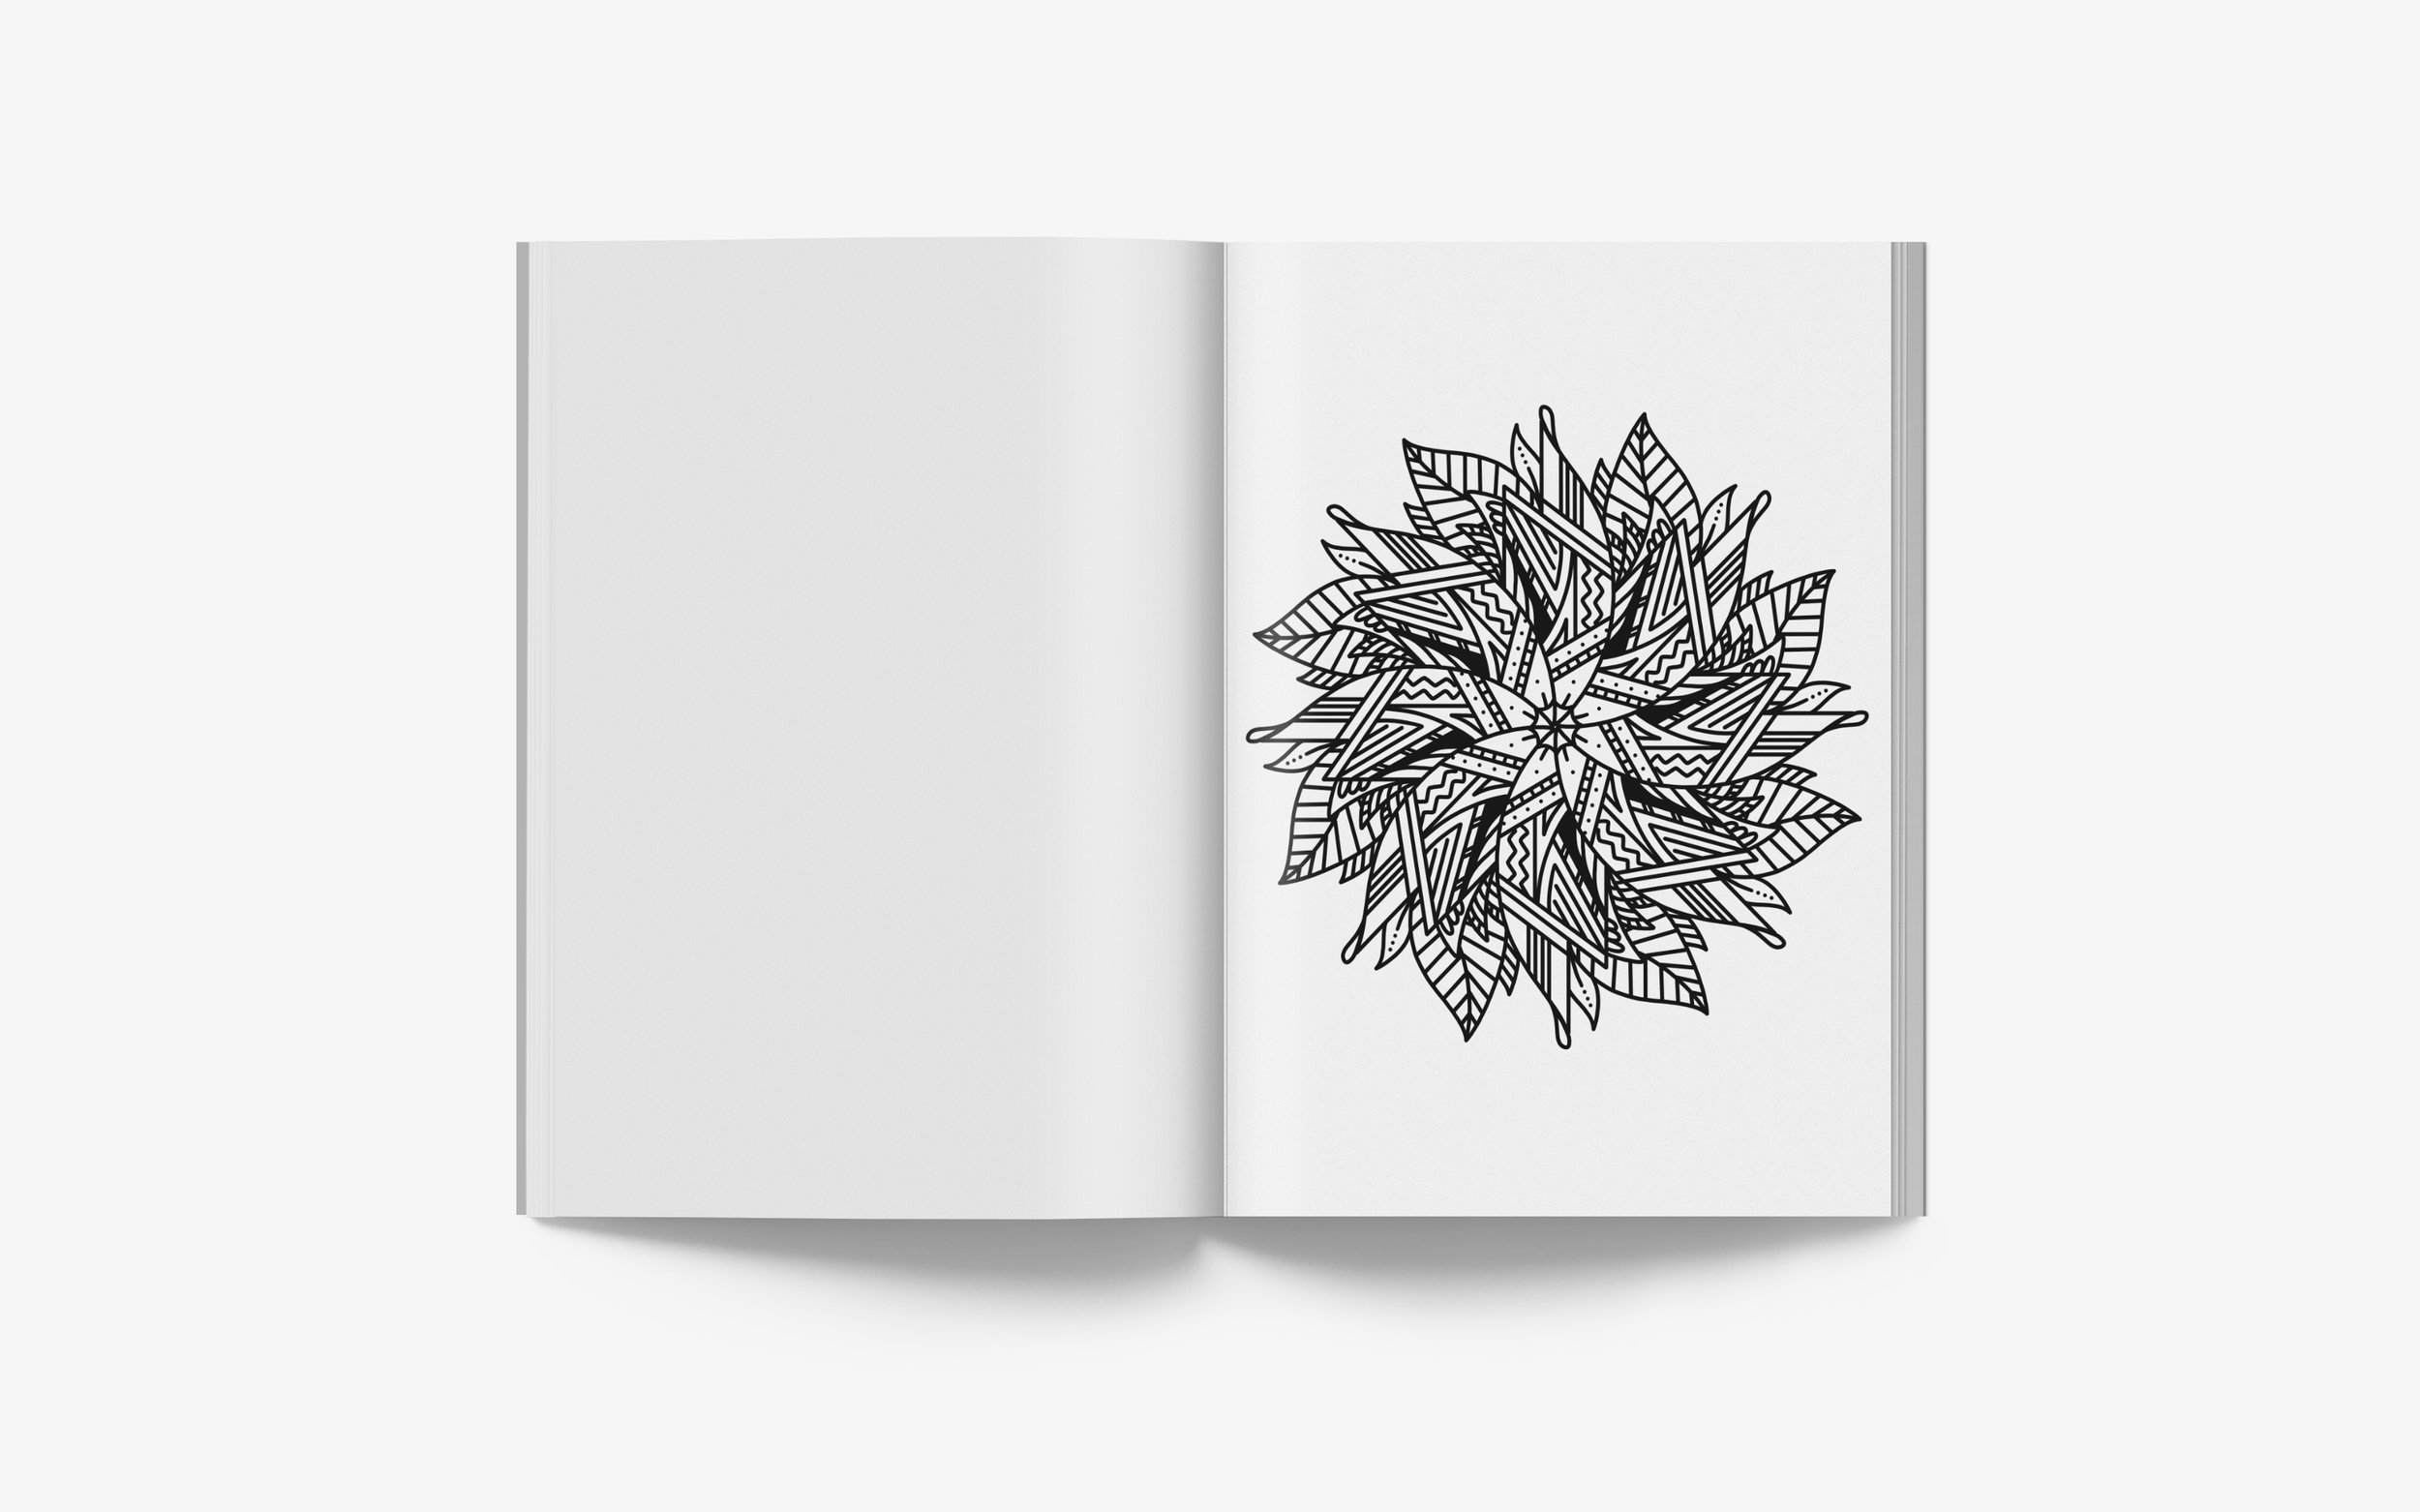 mx-coloringbook-v1-showcase-pages-1.3.jpg